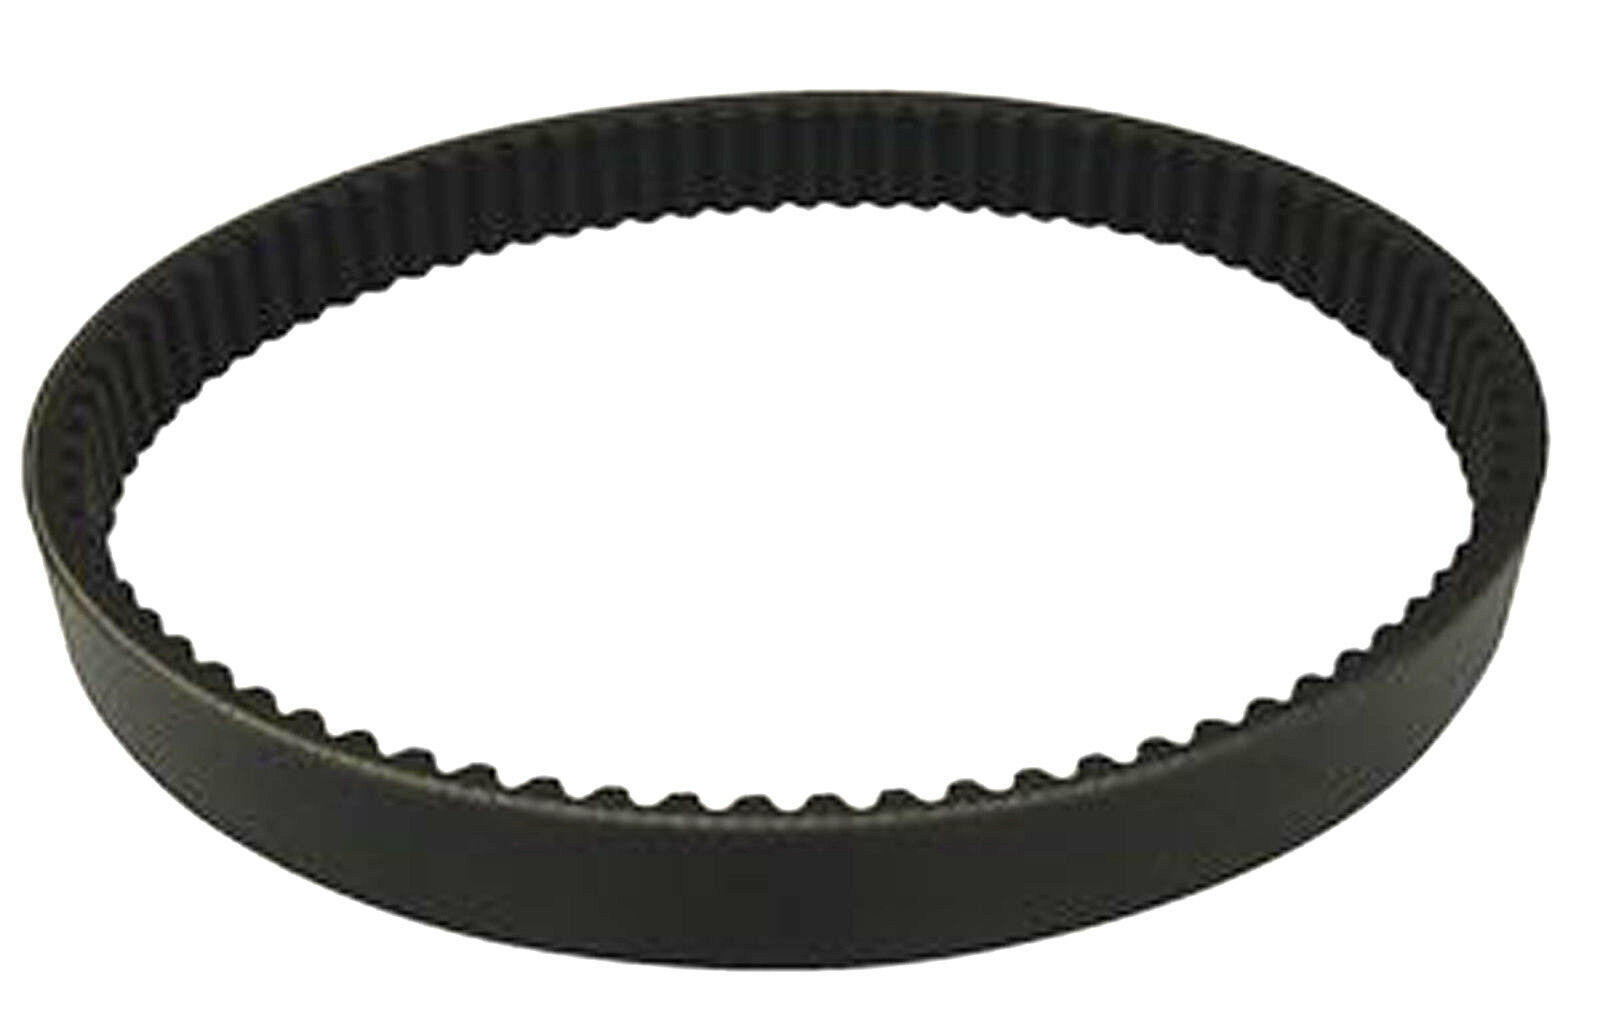 Primary image for New Replacement Belt for use with Delta 15-000 Drill Press belt